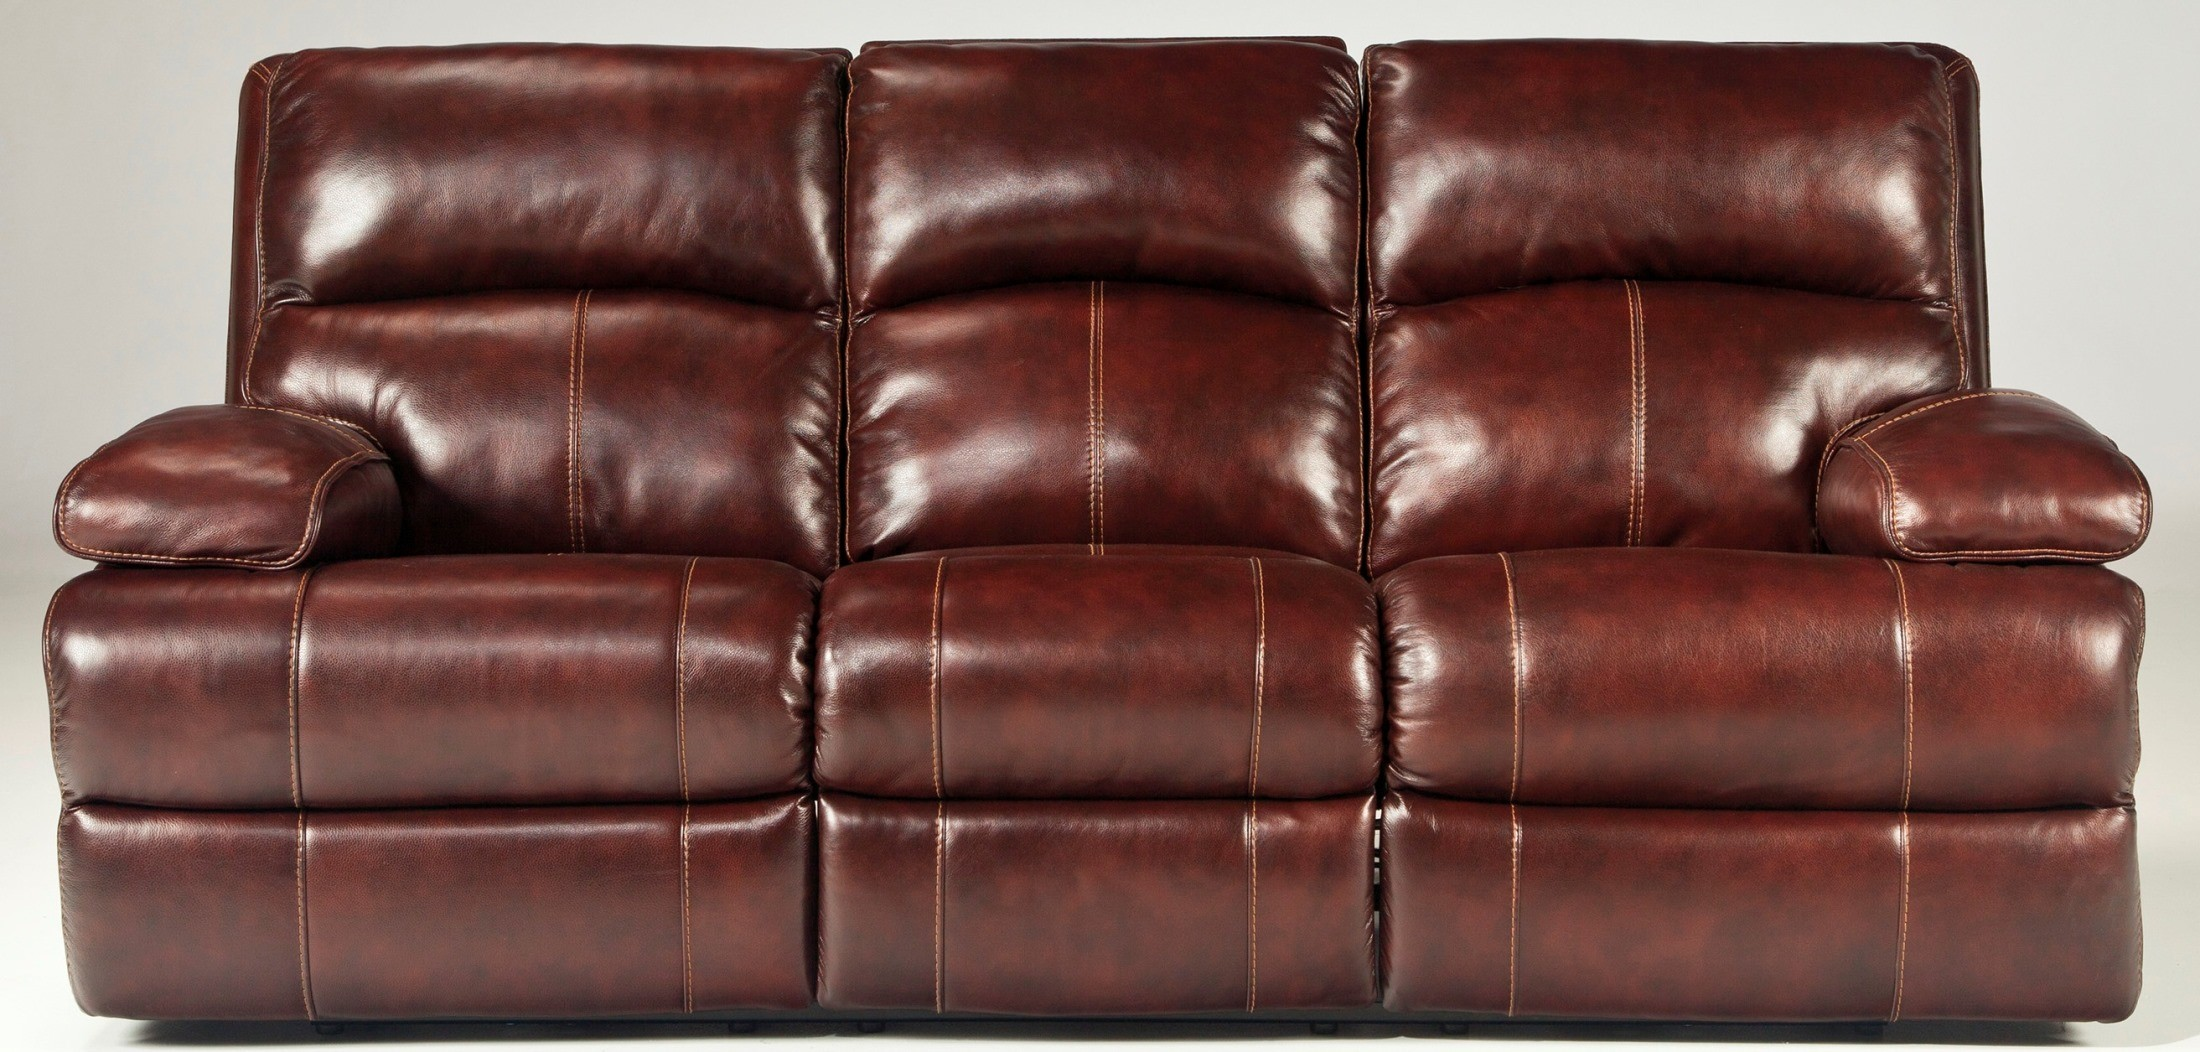 Gately Lift Top Cocktail Table Lensar Burgundy Reclining Sofa, U9900088, Ashley Furniture